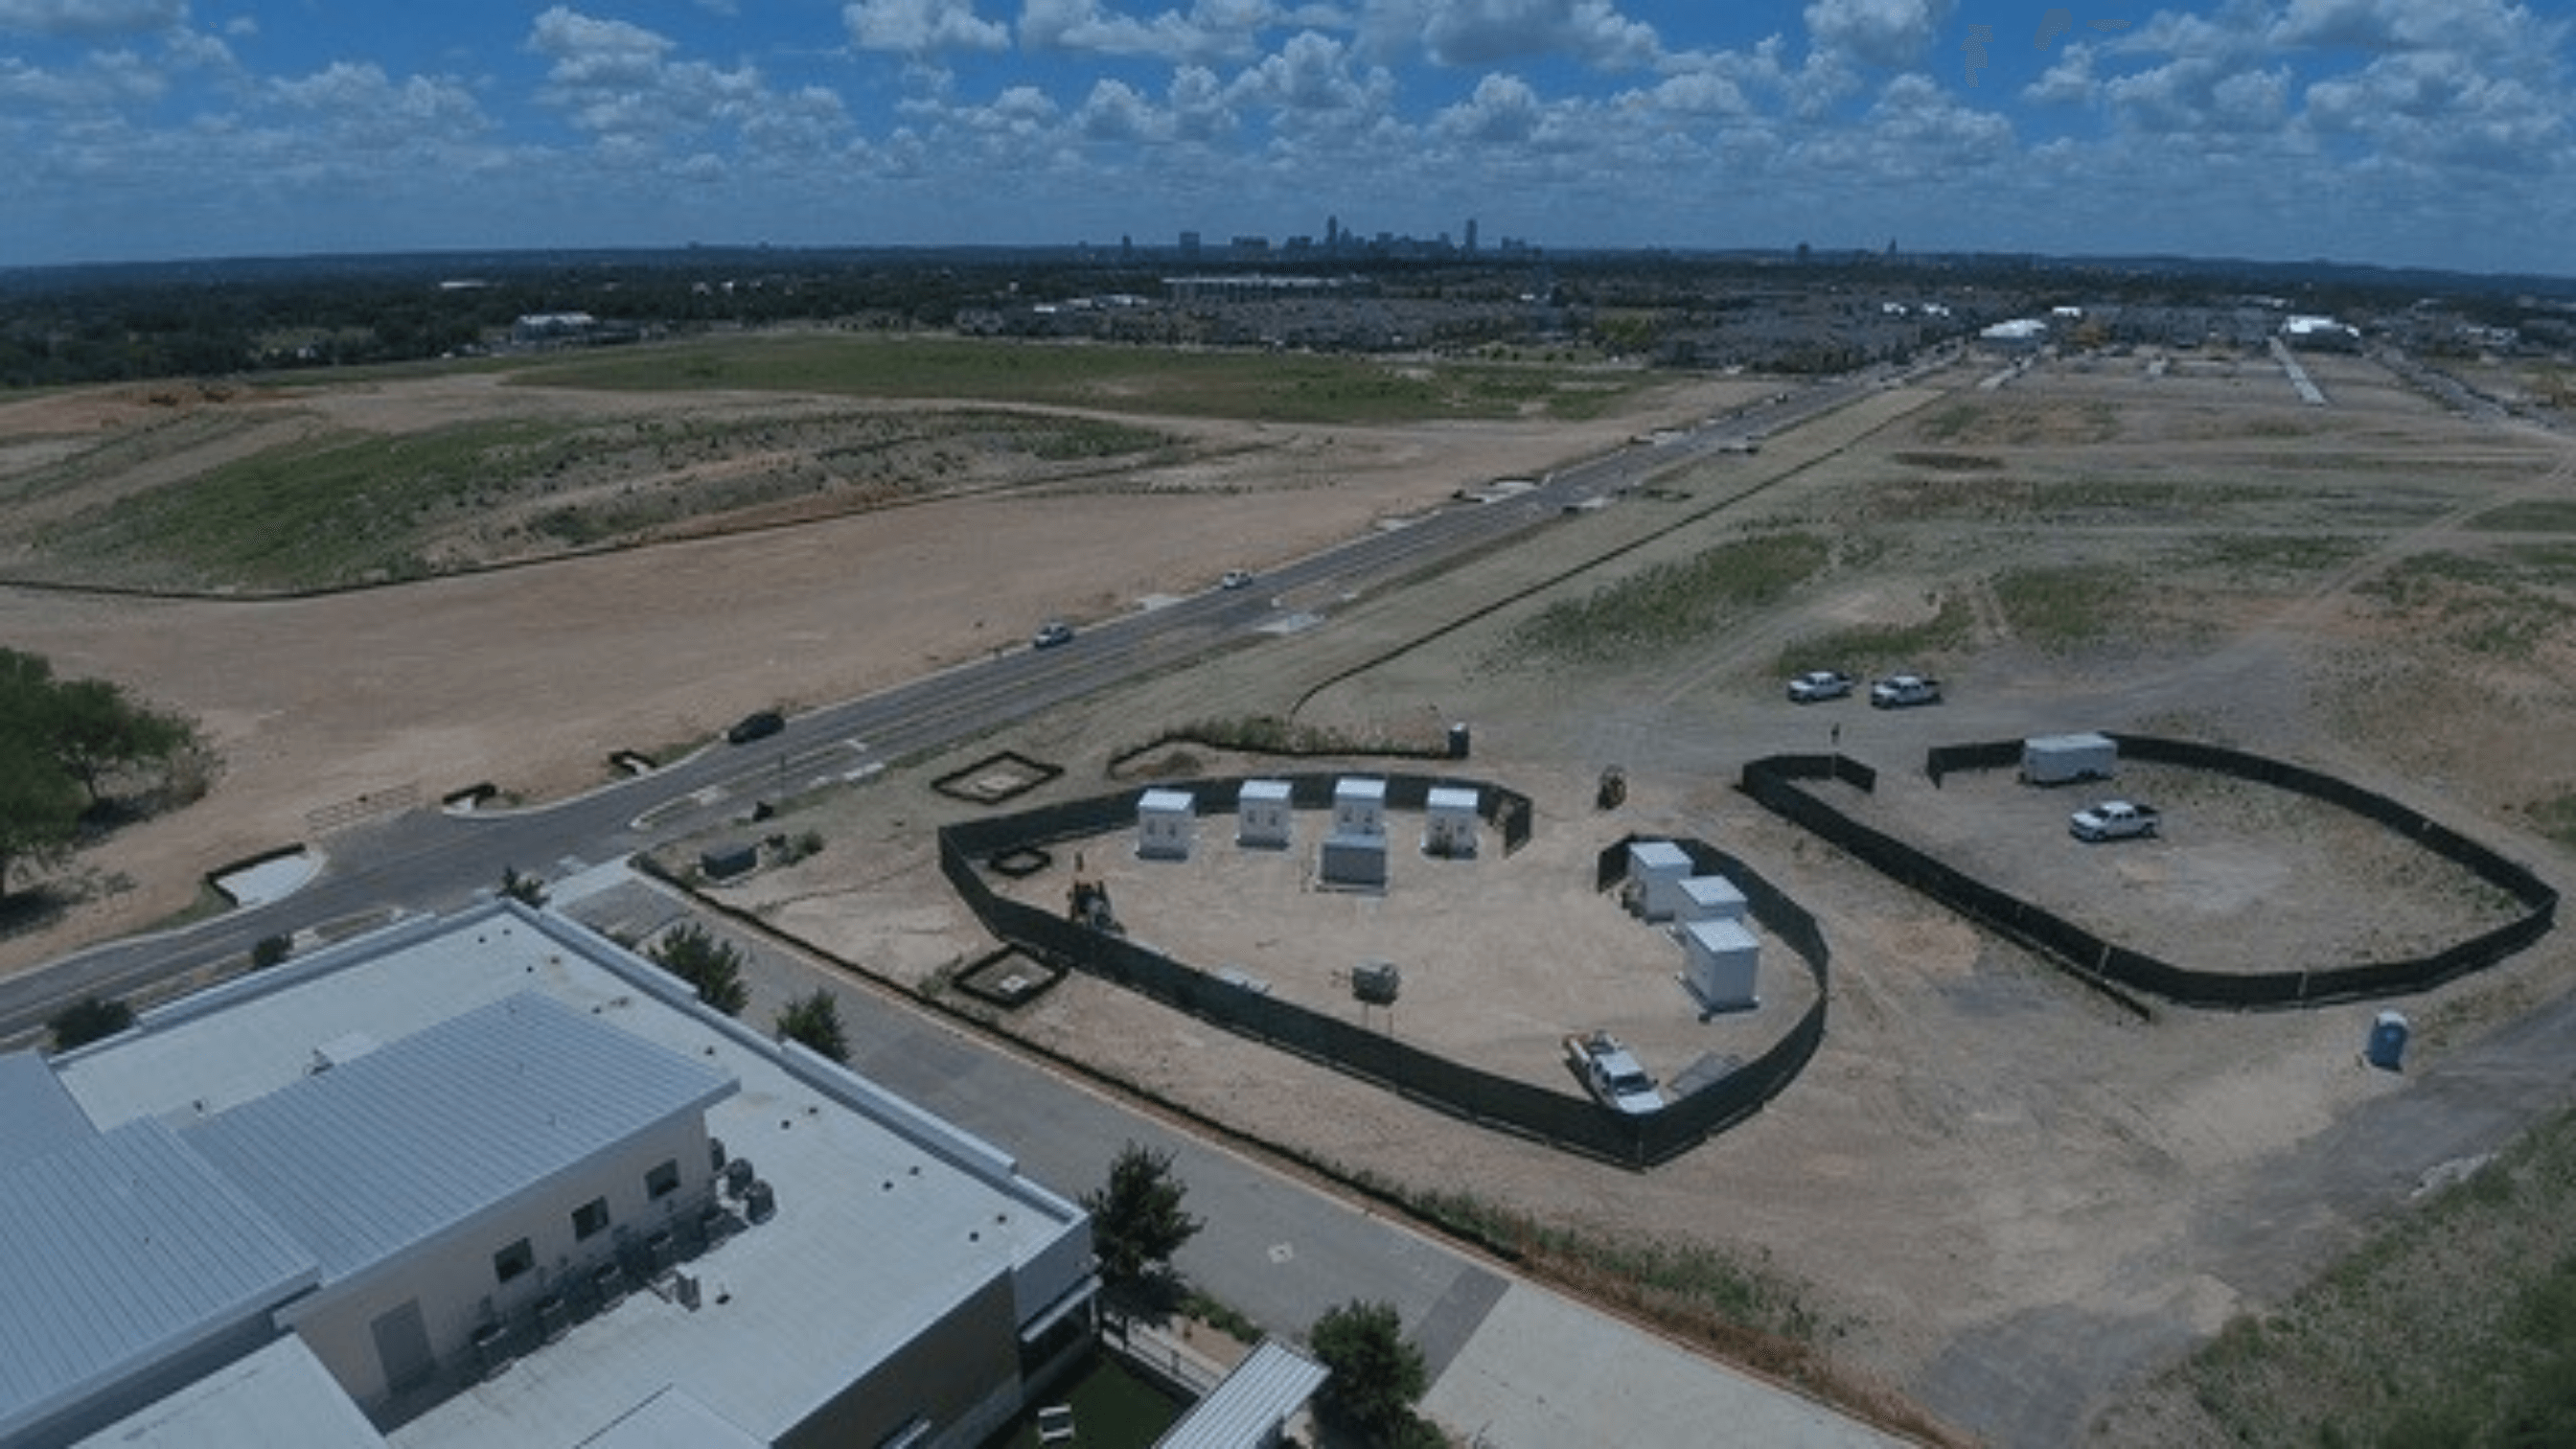 Overview of austin site